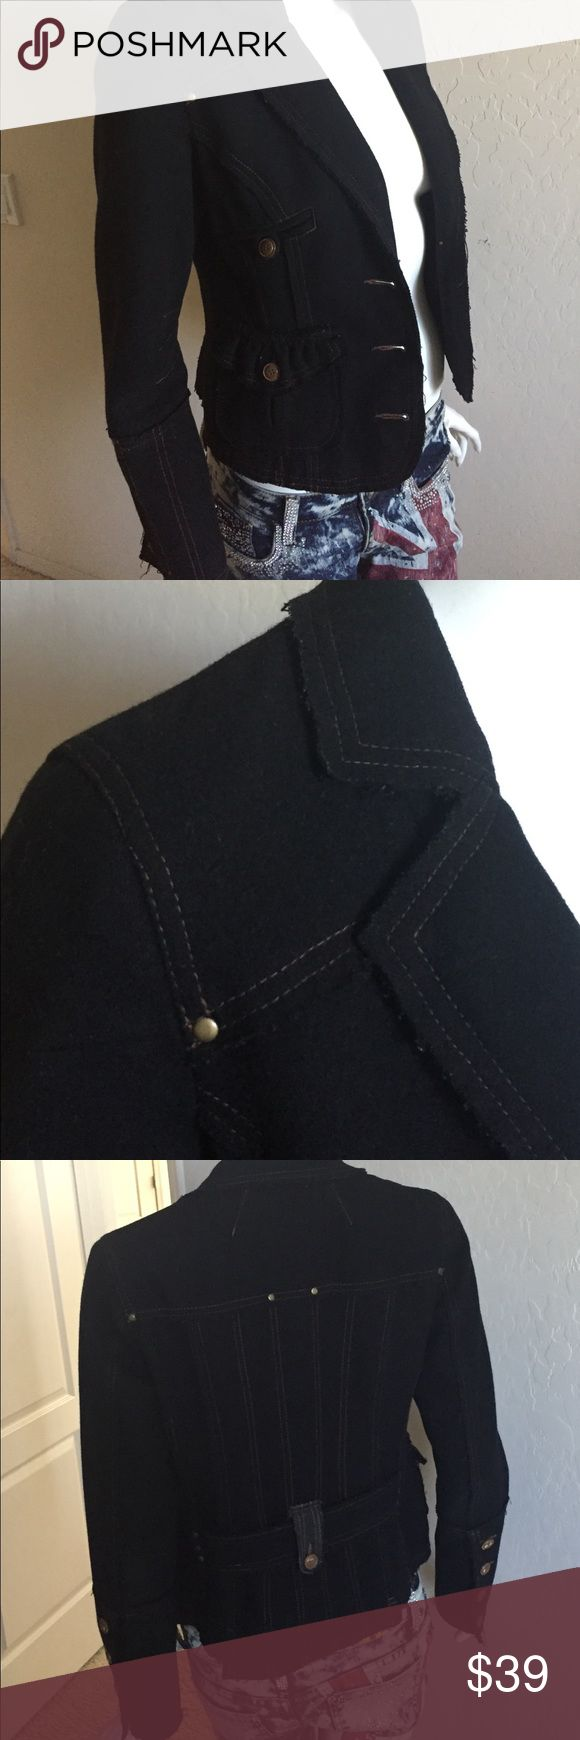 Vero Moda Deconstructed military inspired blazer Vero Moda fitted Deconstructed military inspired blazer in black wool with brown contrast threads. Purposely frayed edges and distressed buttons makes this a unique look. Excellent used condition. Euro size 38 Vero Moda Jackets & Coats Blazers